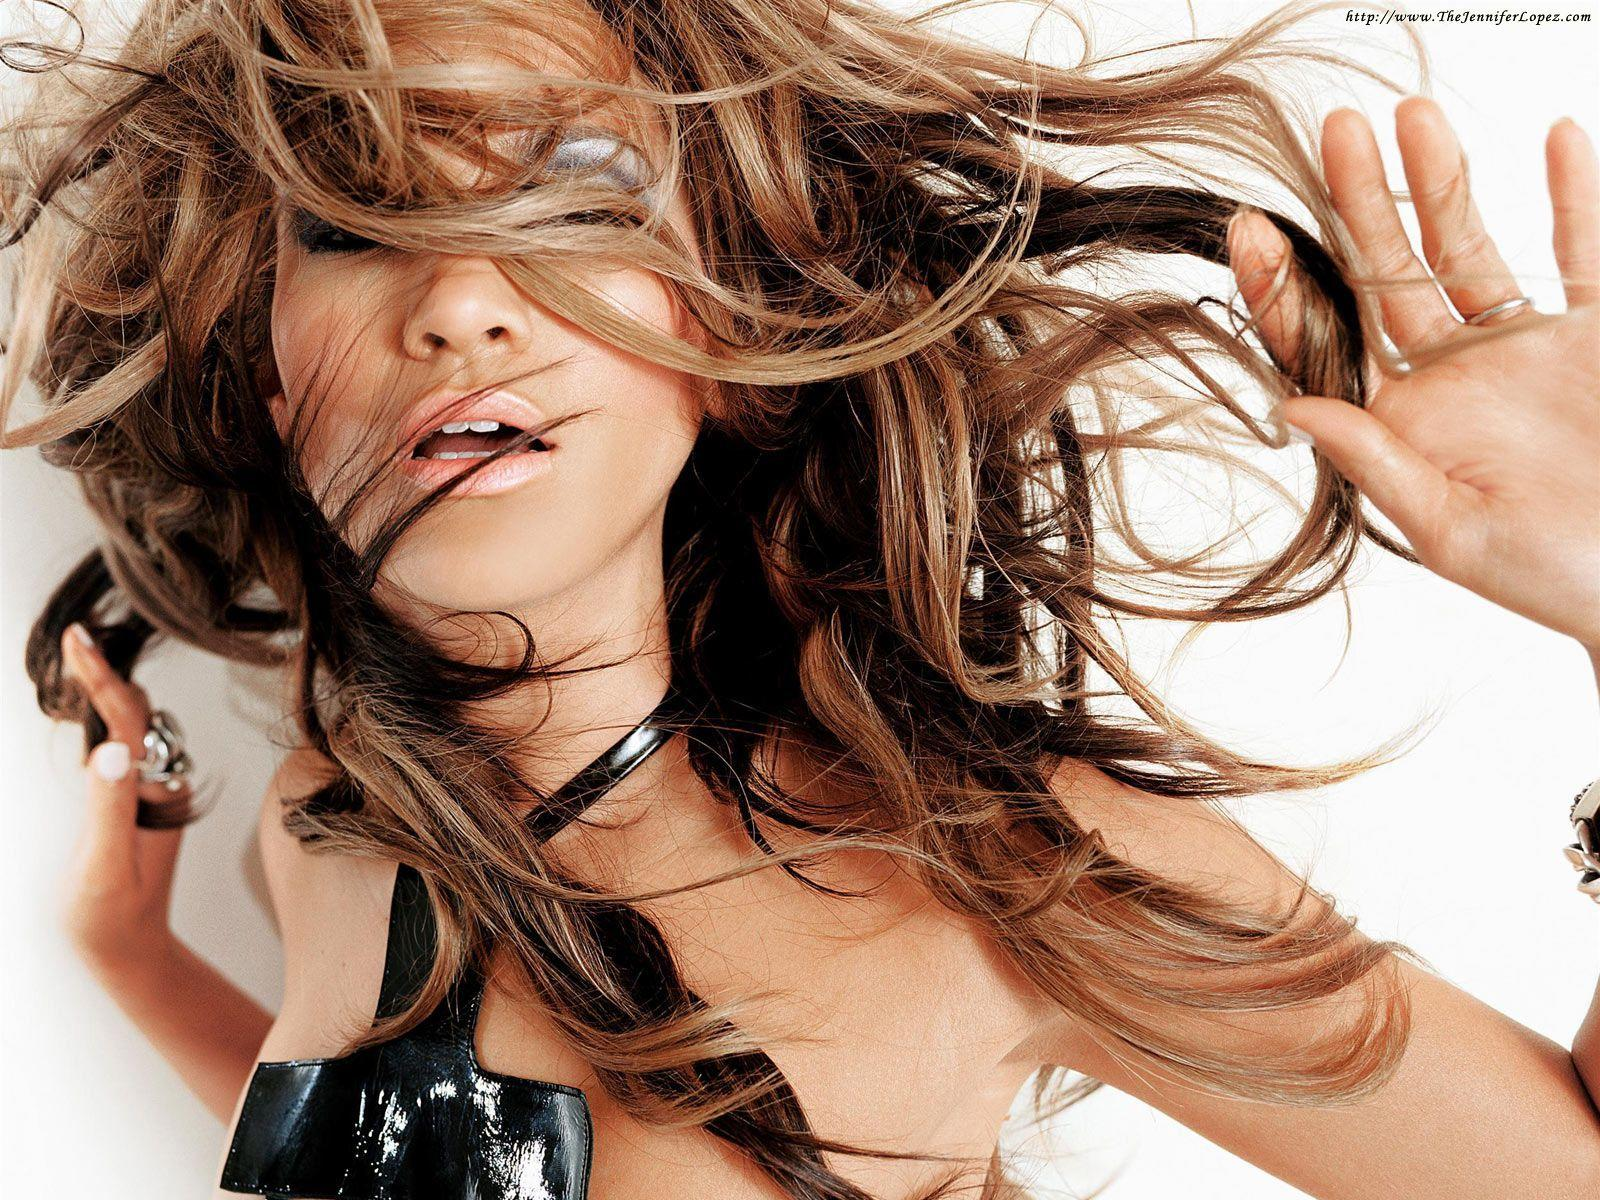 jennifer lopez hot photoshoot